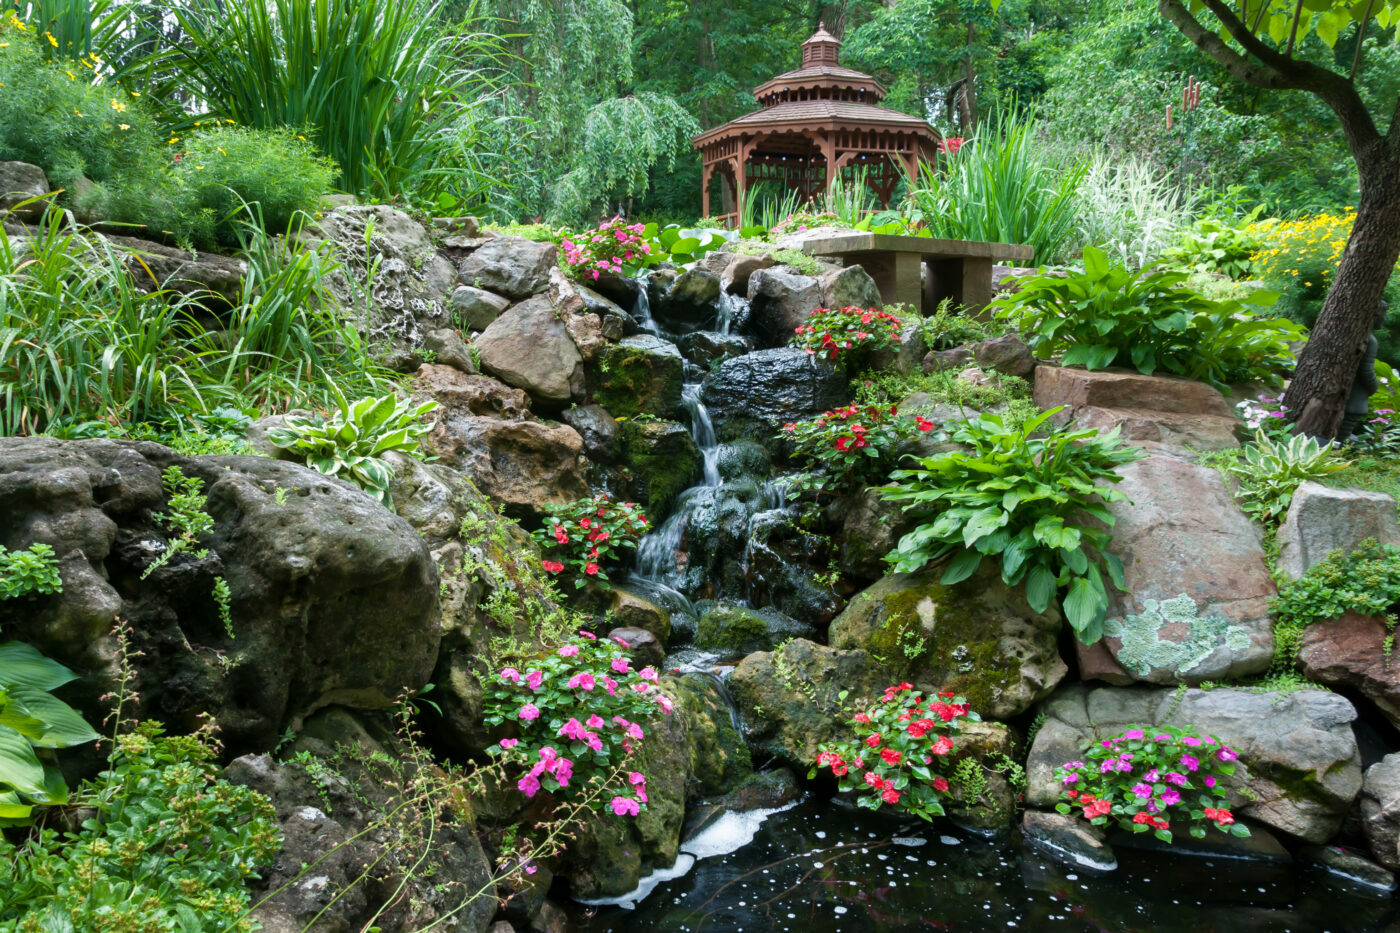 St. Louis based landscape company Bauer Falls designs waterfall gardens.